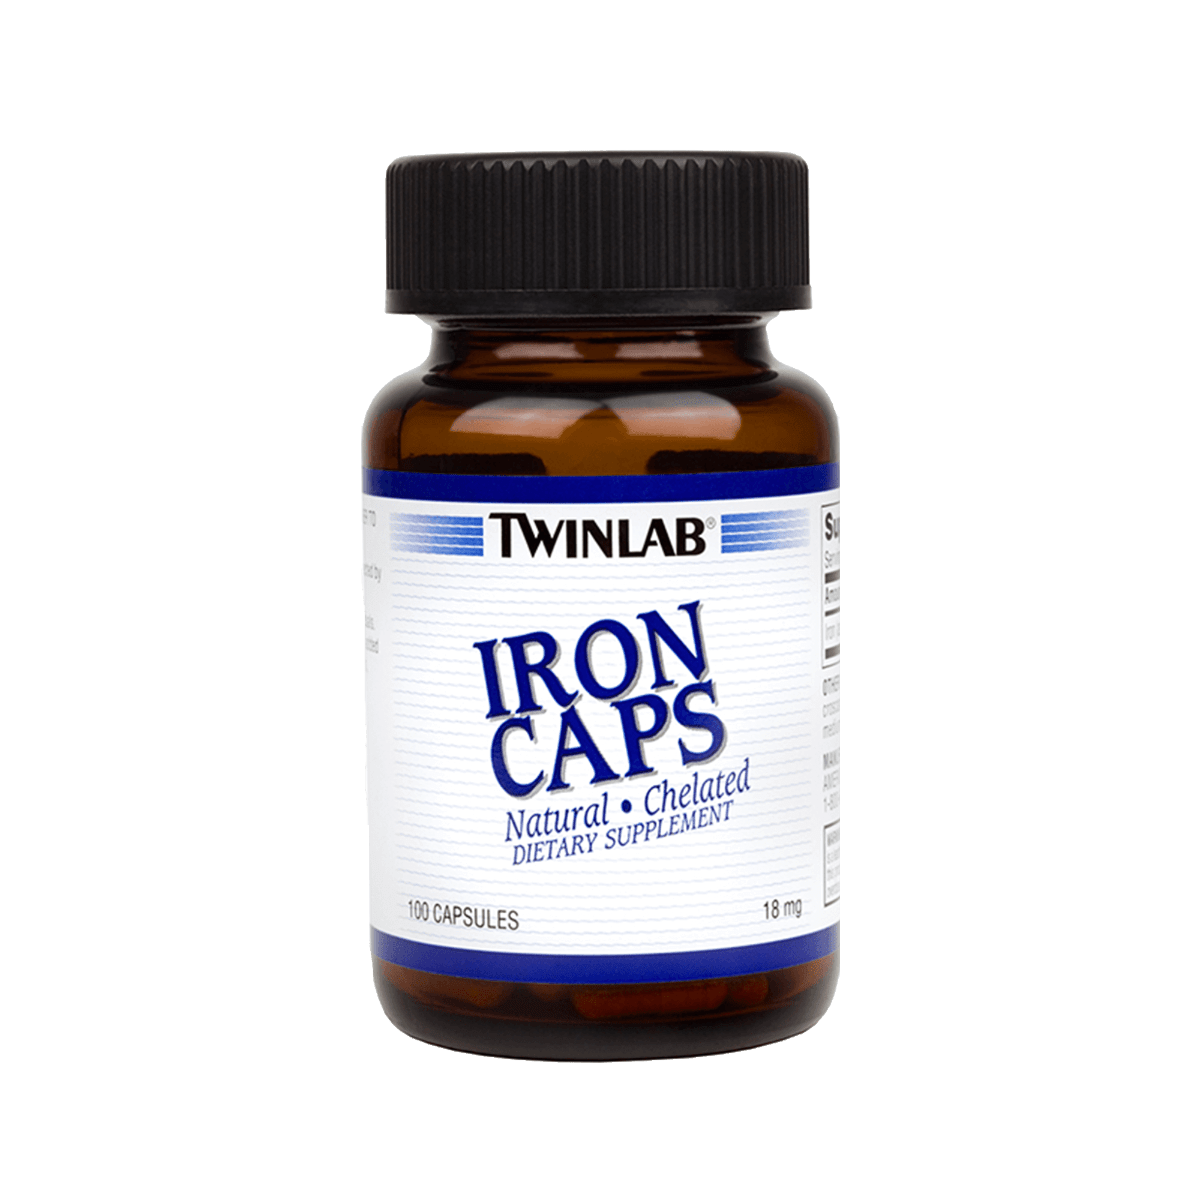 Just 1 capsule of Iron Caps delivers 18mg of your daily iron intake to revive red blood cells.